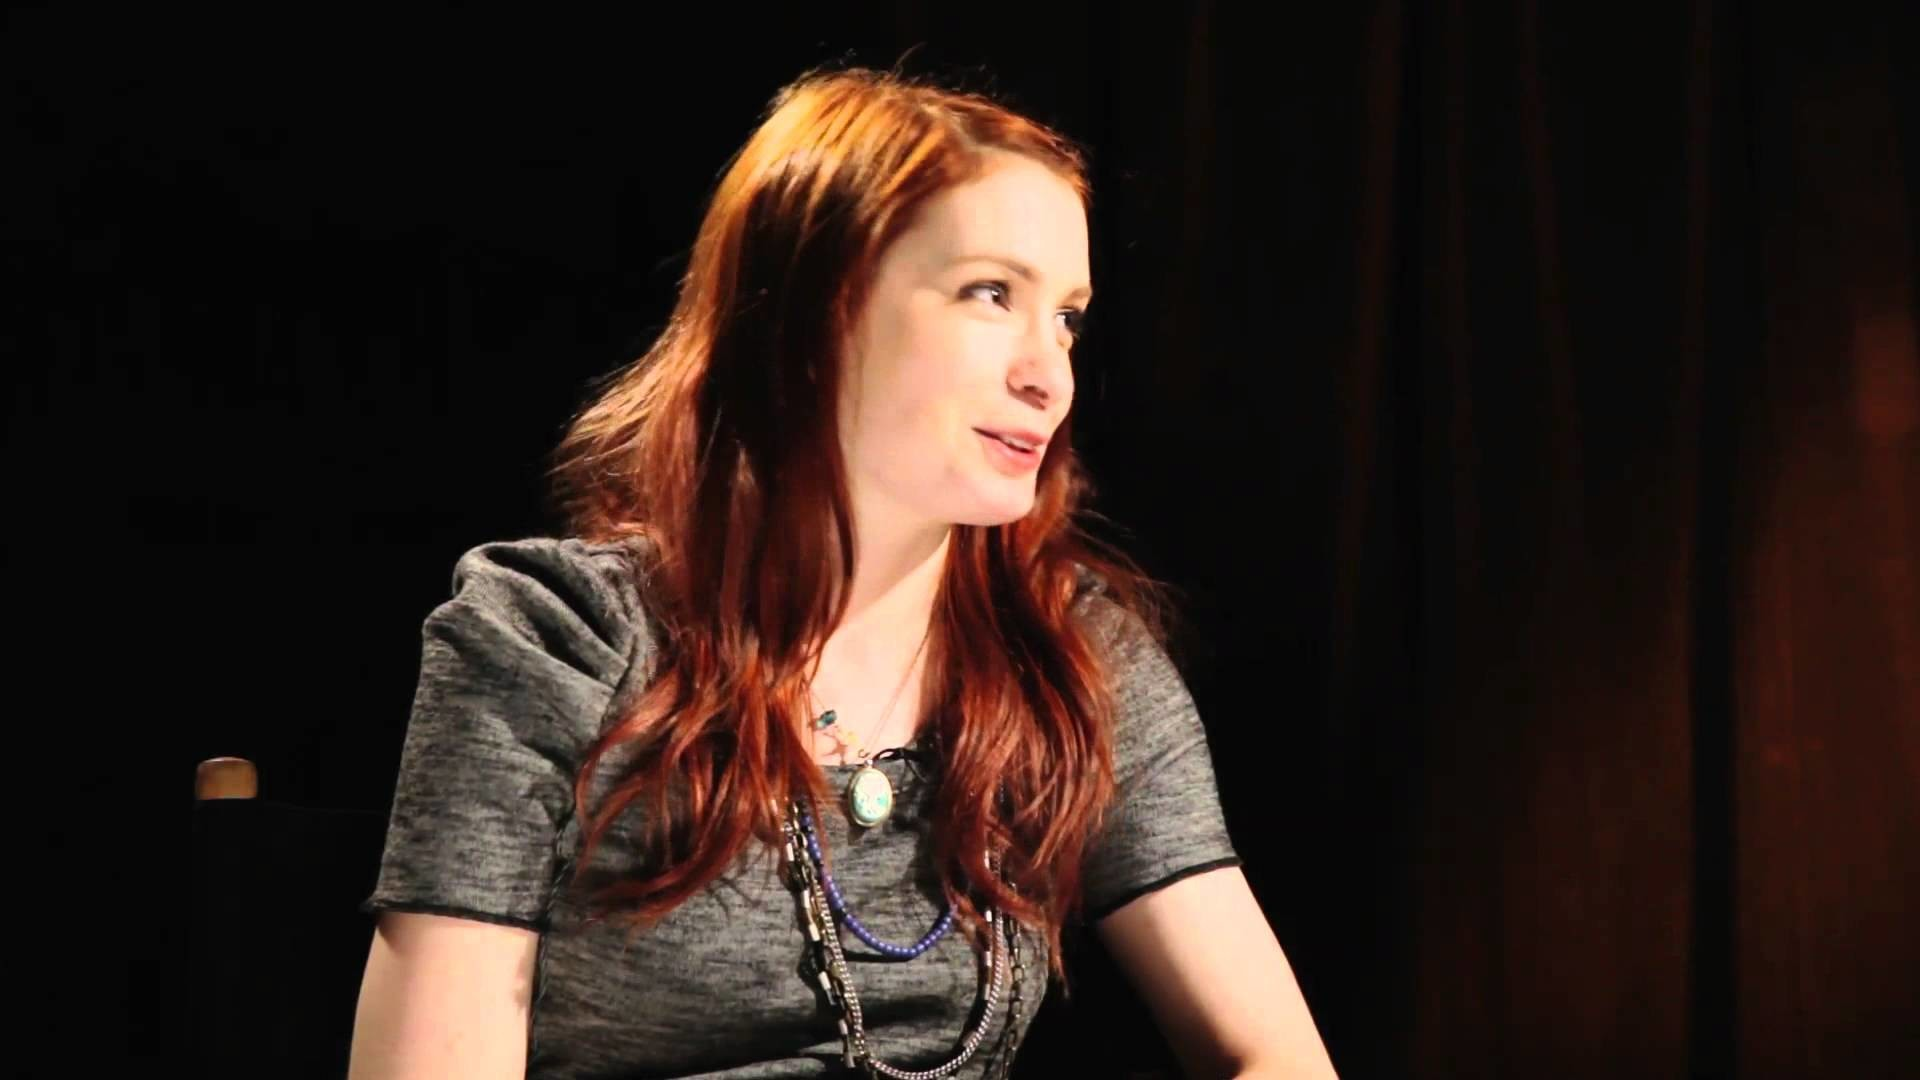 Felicia Day talks Dragon Age II DLC, Mass Effect romances and more – YouTube